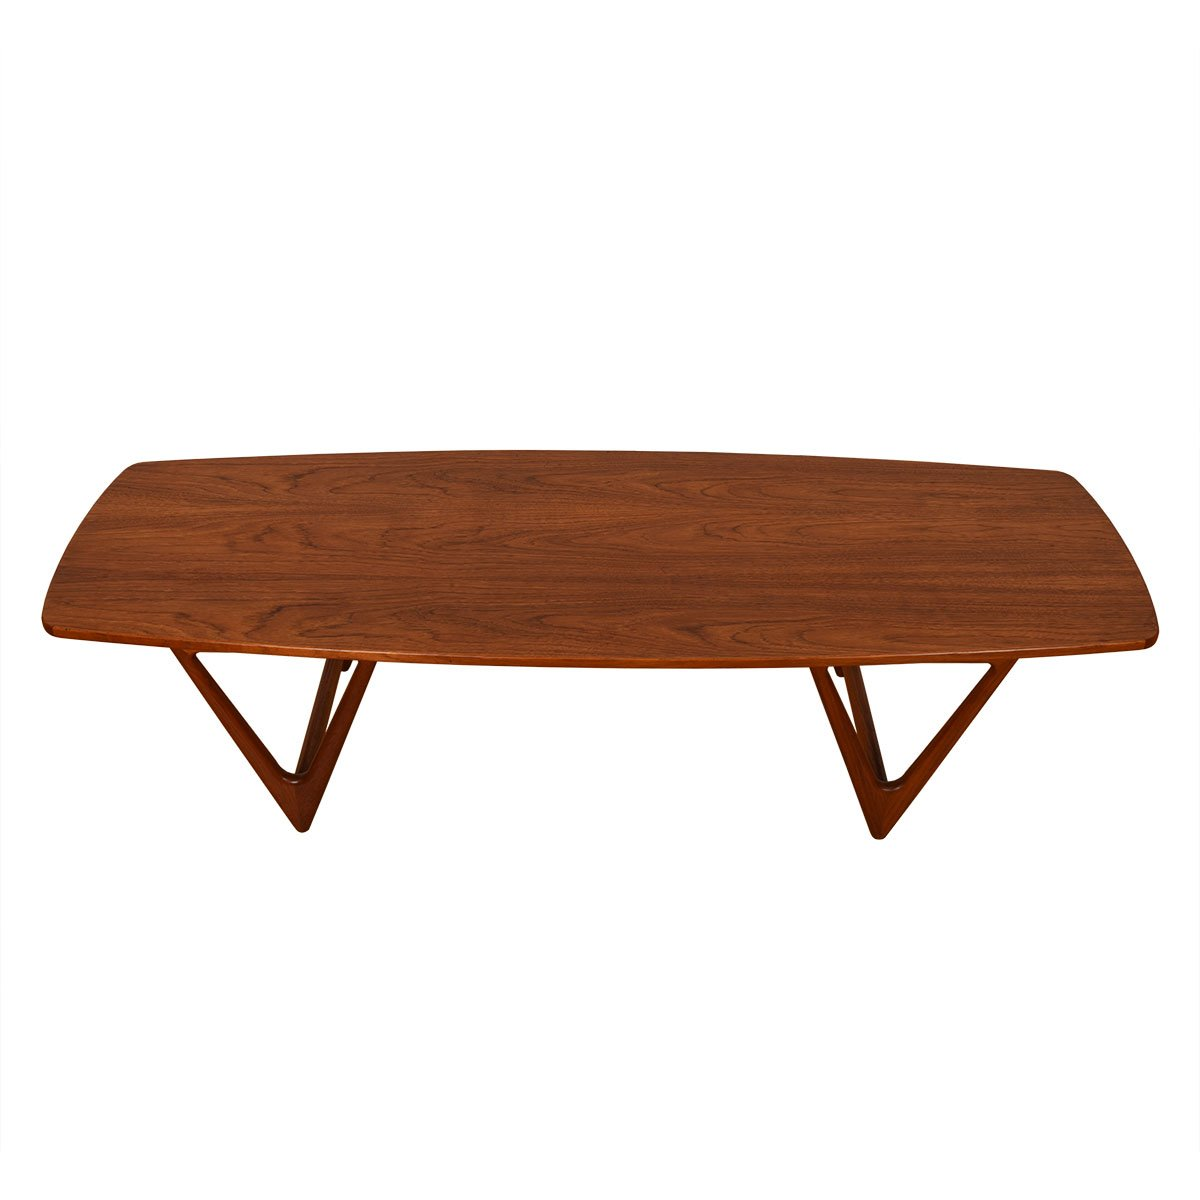 "Danish Teak Bowed Shape ""V-Leg Coffee Table"